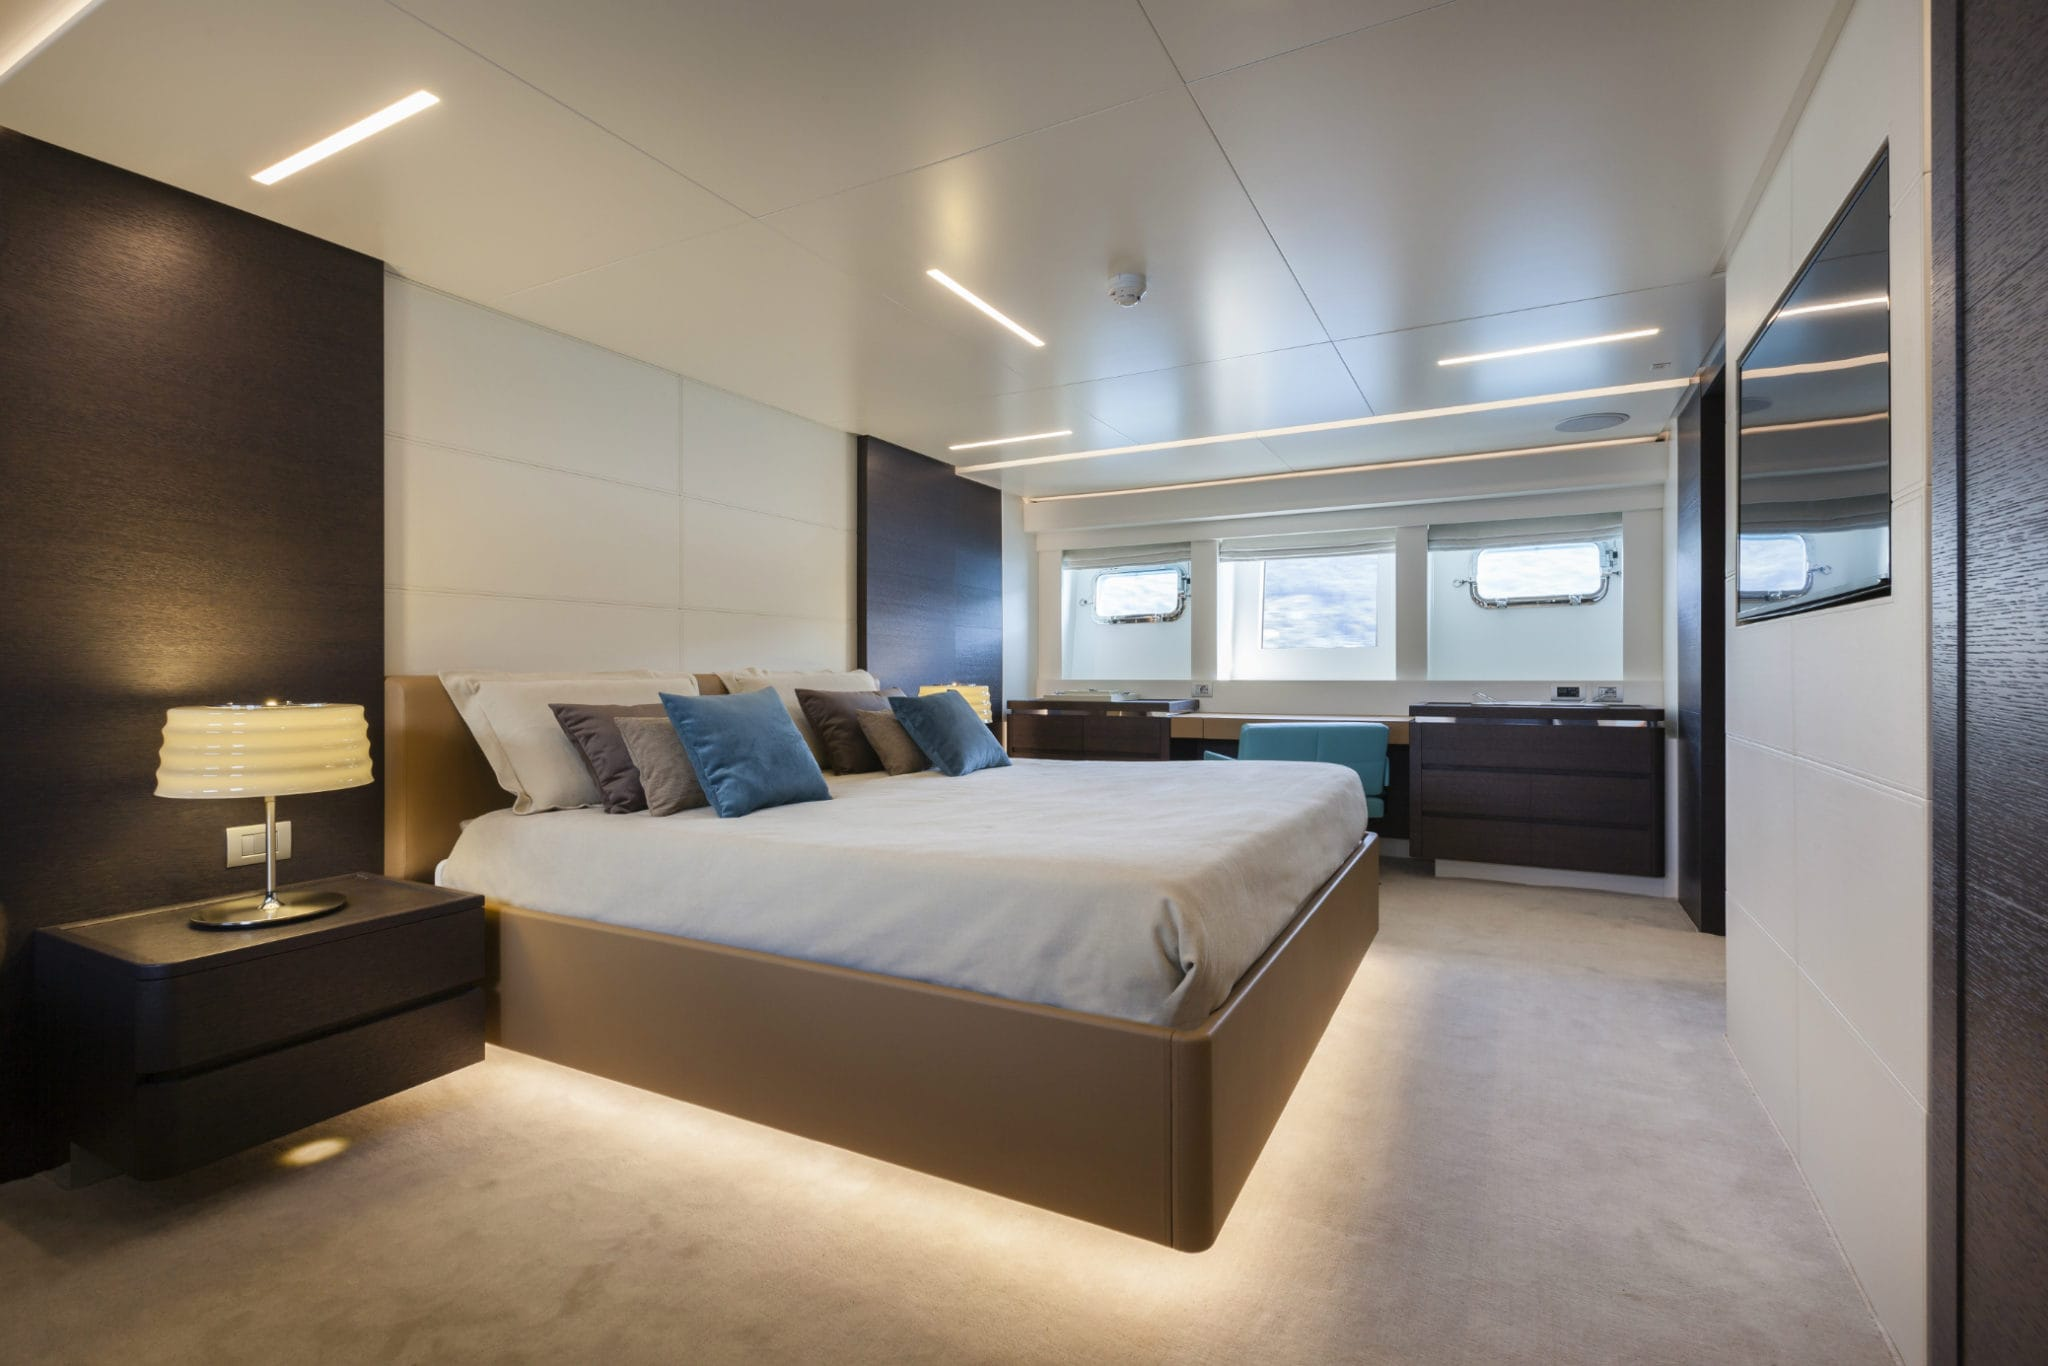 On Board of a Yacht, bed room